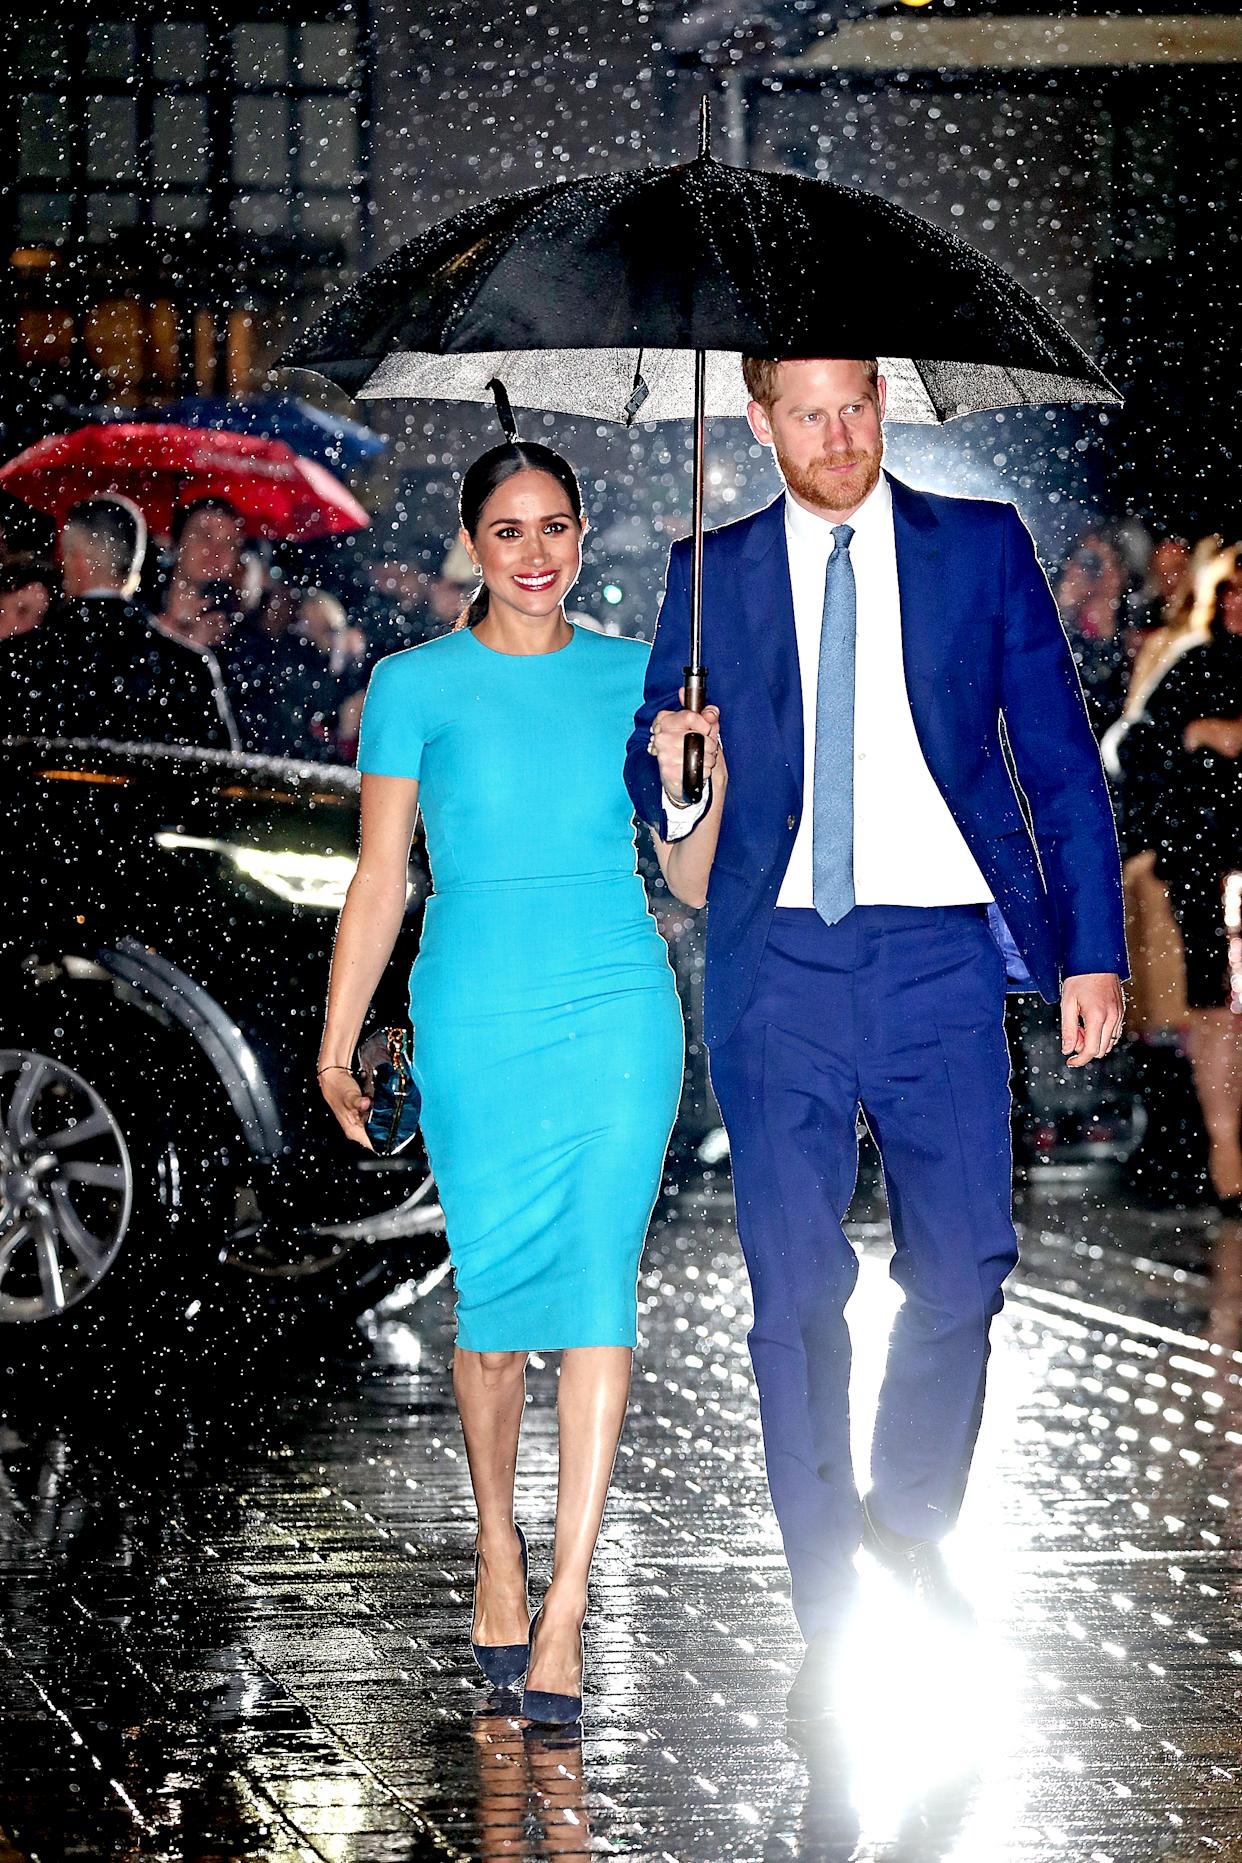 Meghan Markle and Prince Harry made a splash at The Endeavour Fund Awards on March 05, 2020 in London, England. (Photo: Chris Jackson/Getty Images)